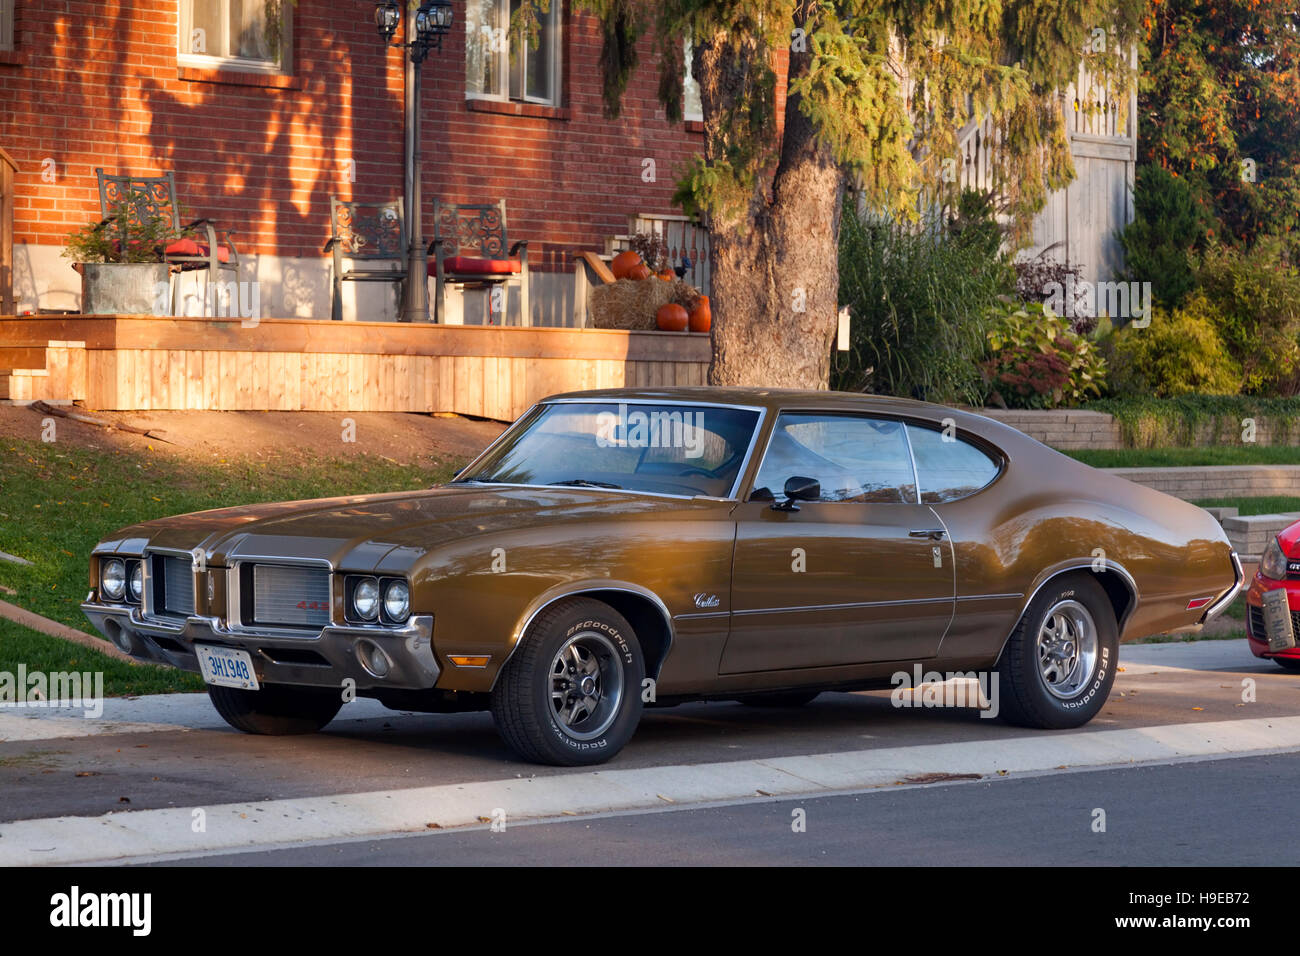 Fine Muscle Cars For Sale Perth Embellishment - Classic Cars Ideas ...